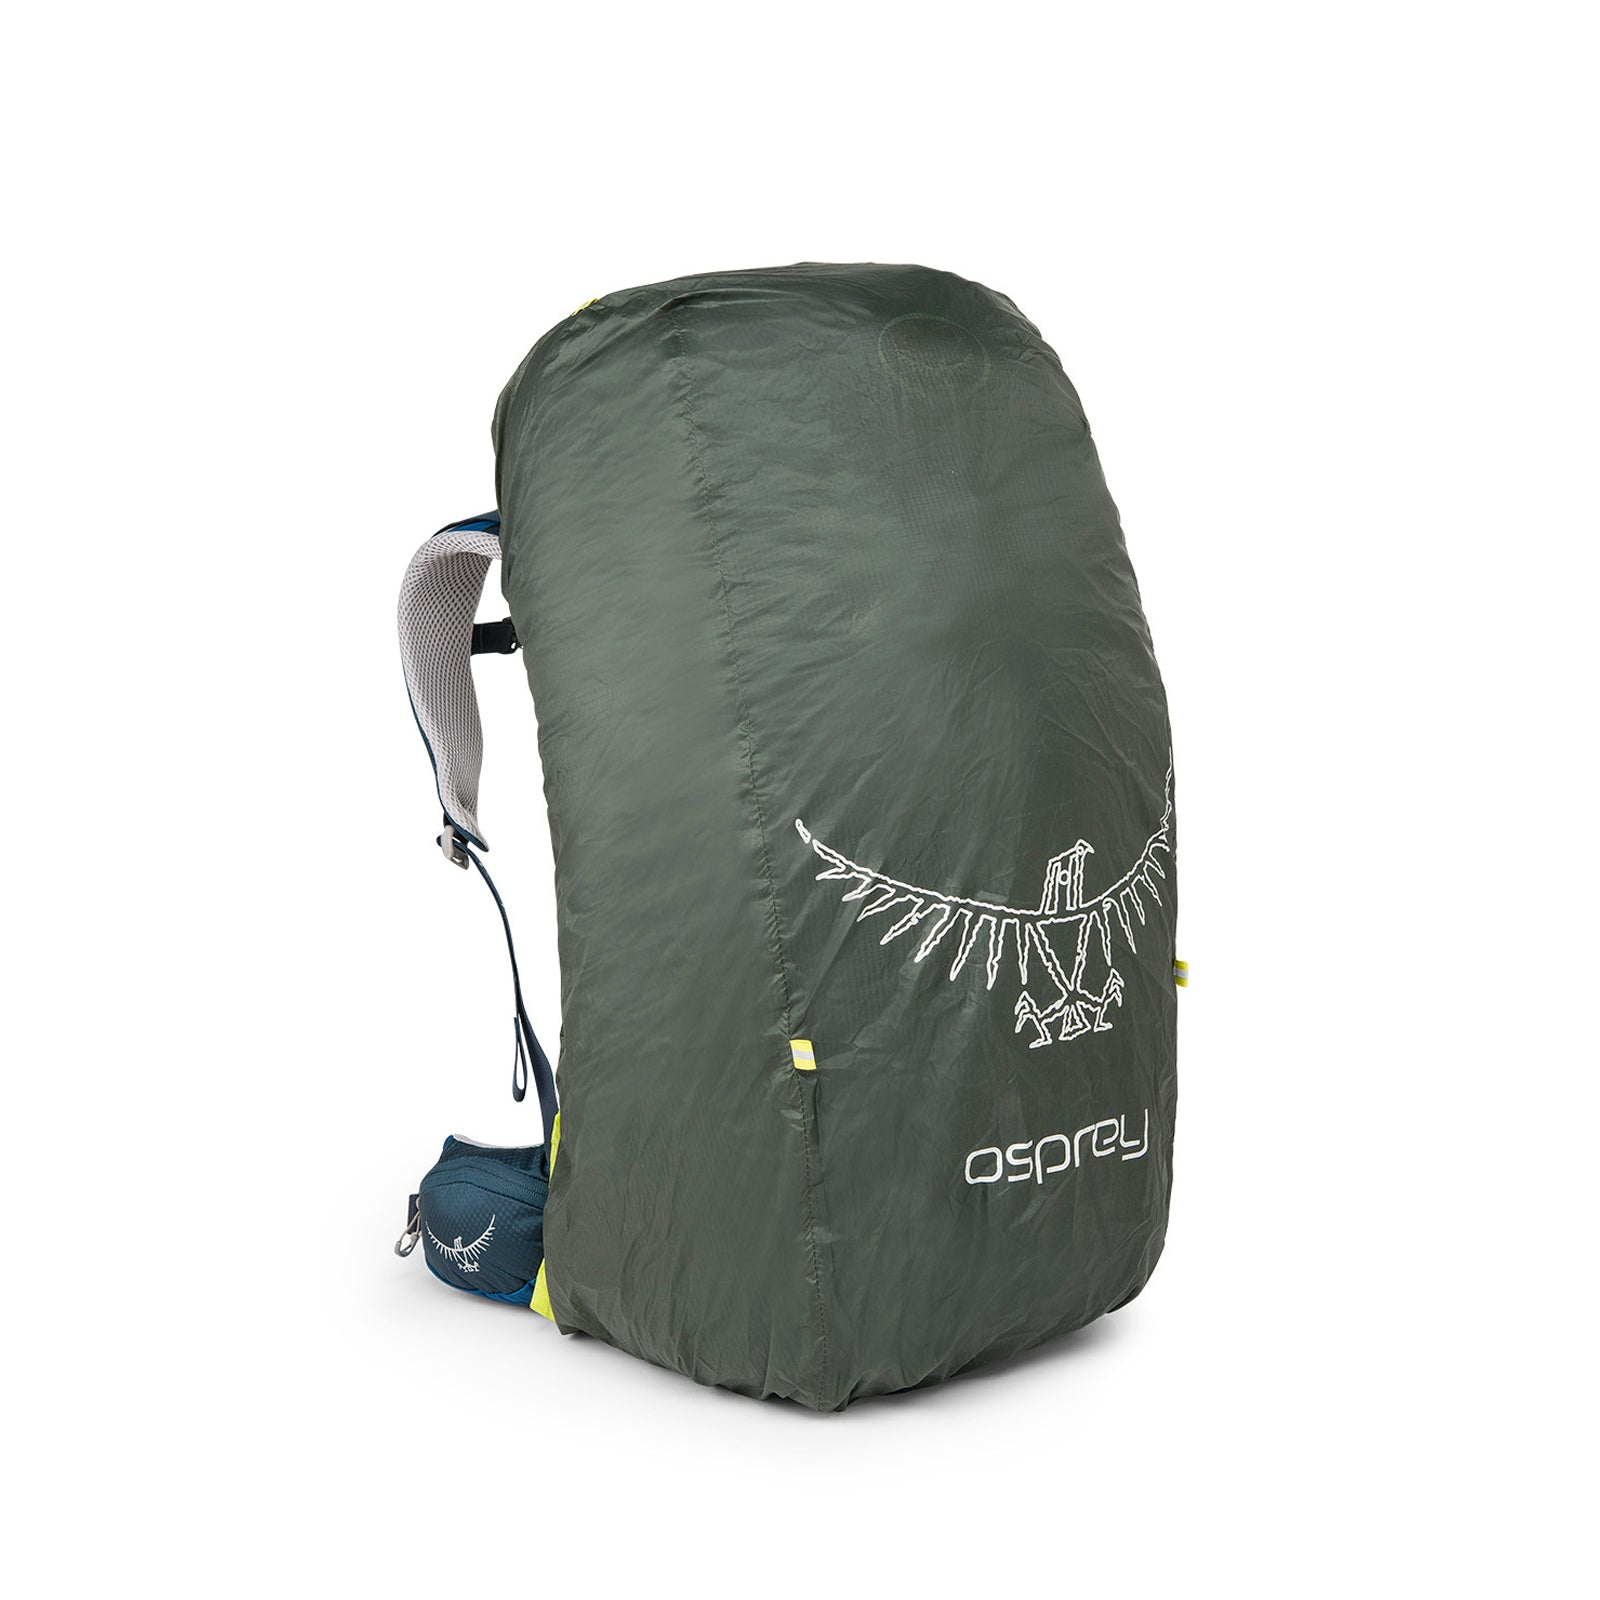 Osprey Ultralight Raincover Extra Large (75 - 110 litre)